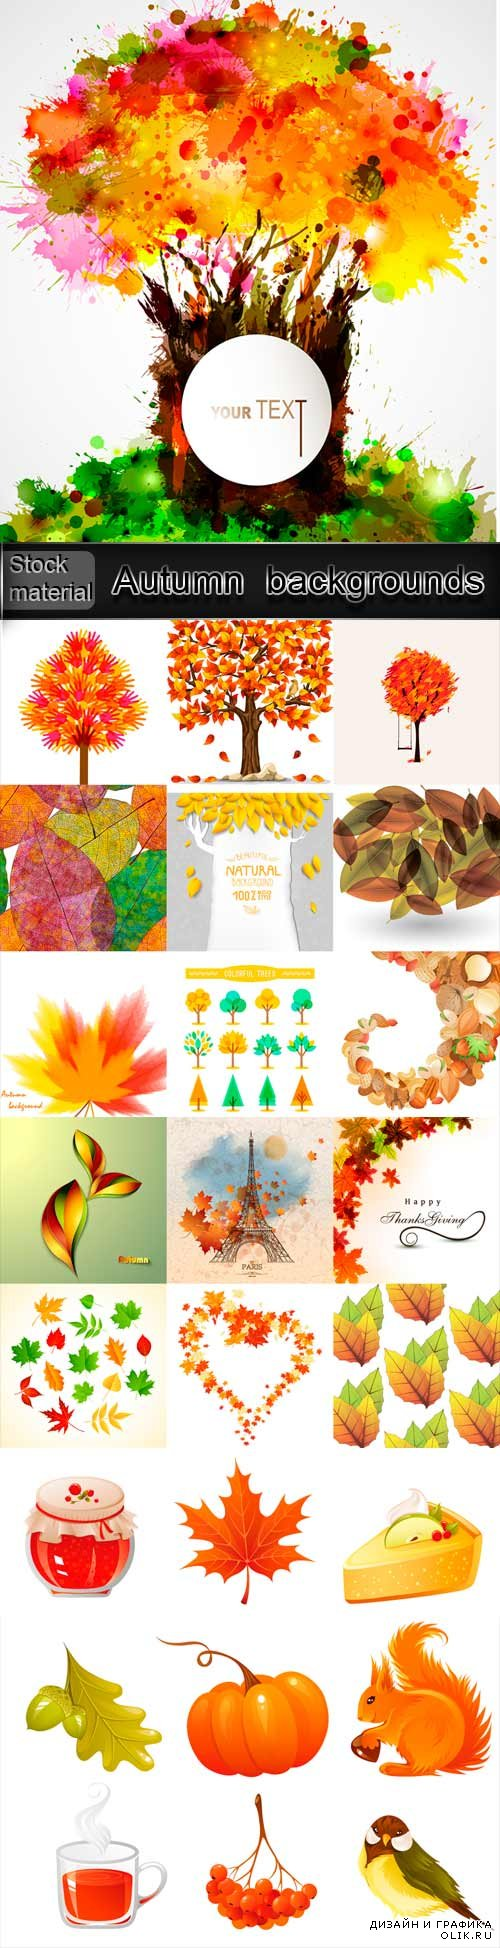 Autumn vector backgrounds with trees and leaves